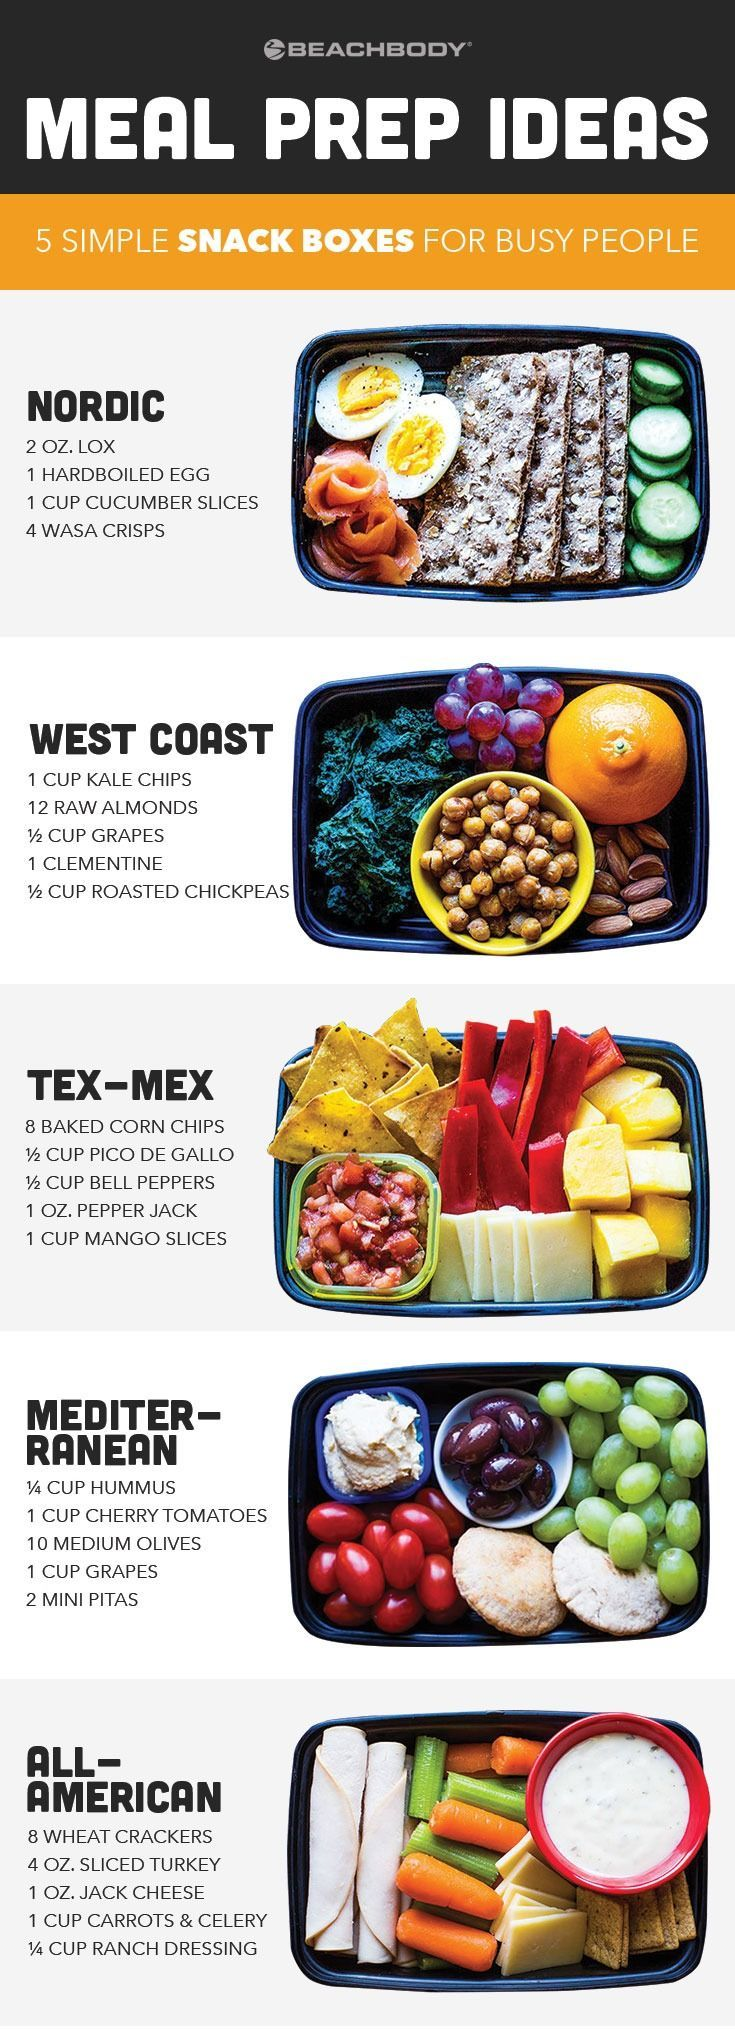 If you're busy and on the run, it can be hard to stay on track with your healthy eating. Check out this blog for 5 meal prep ideas that incorporate lots of protein, and are easy to prepare into snack boxes. meal prep // meal planning // healthy eating // Beachbody // Beachbody Bl